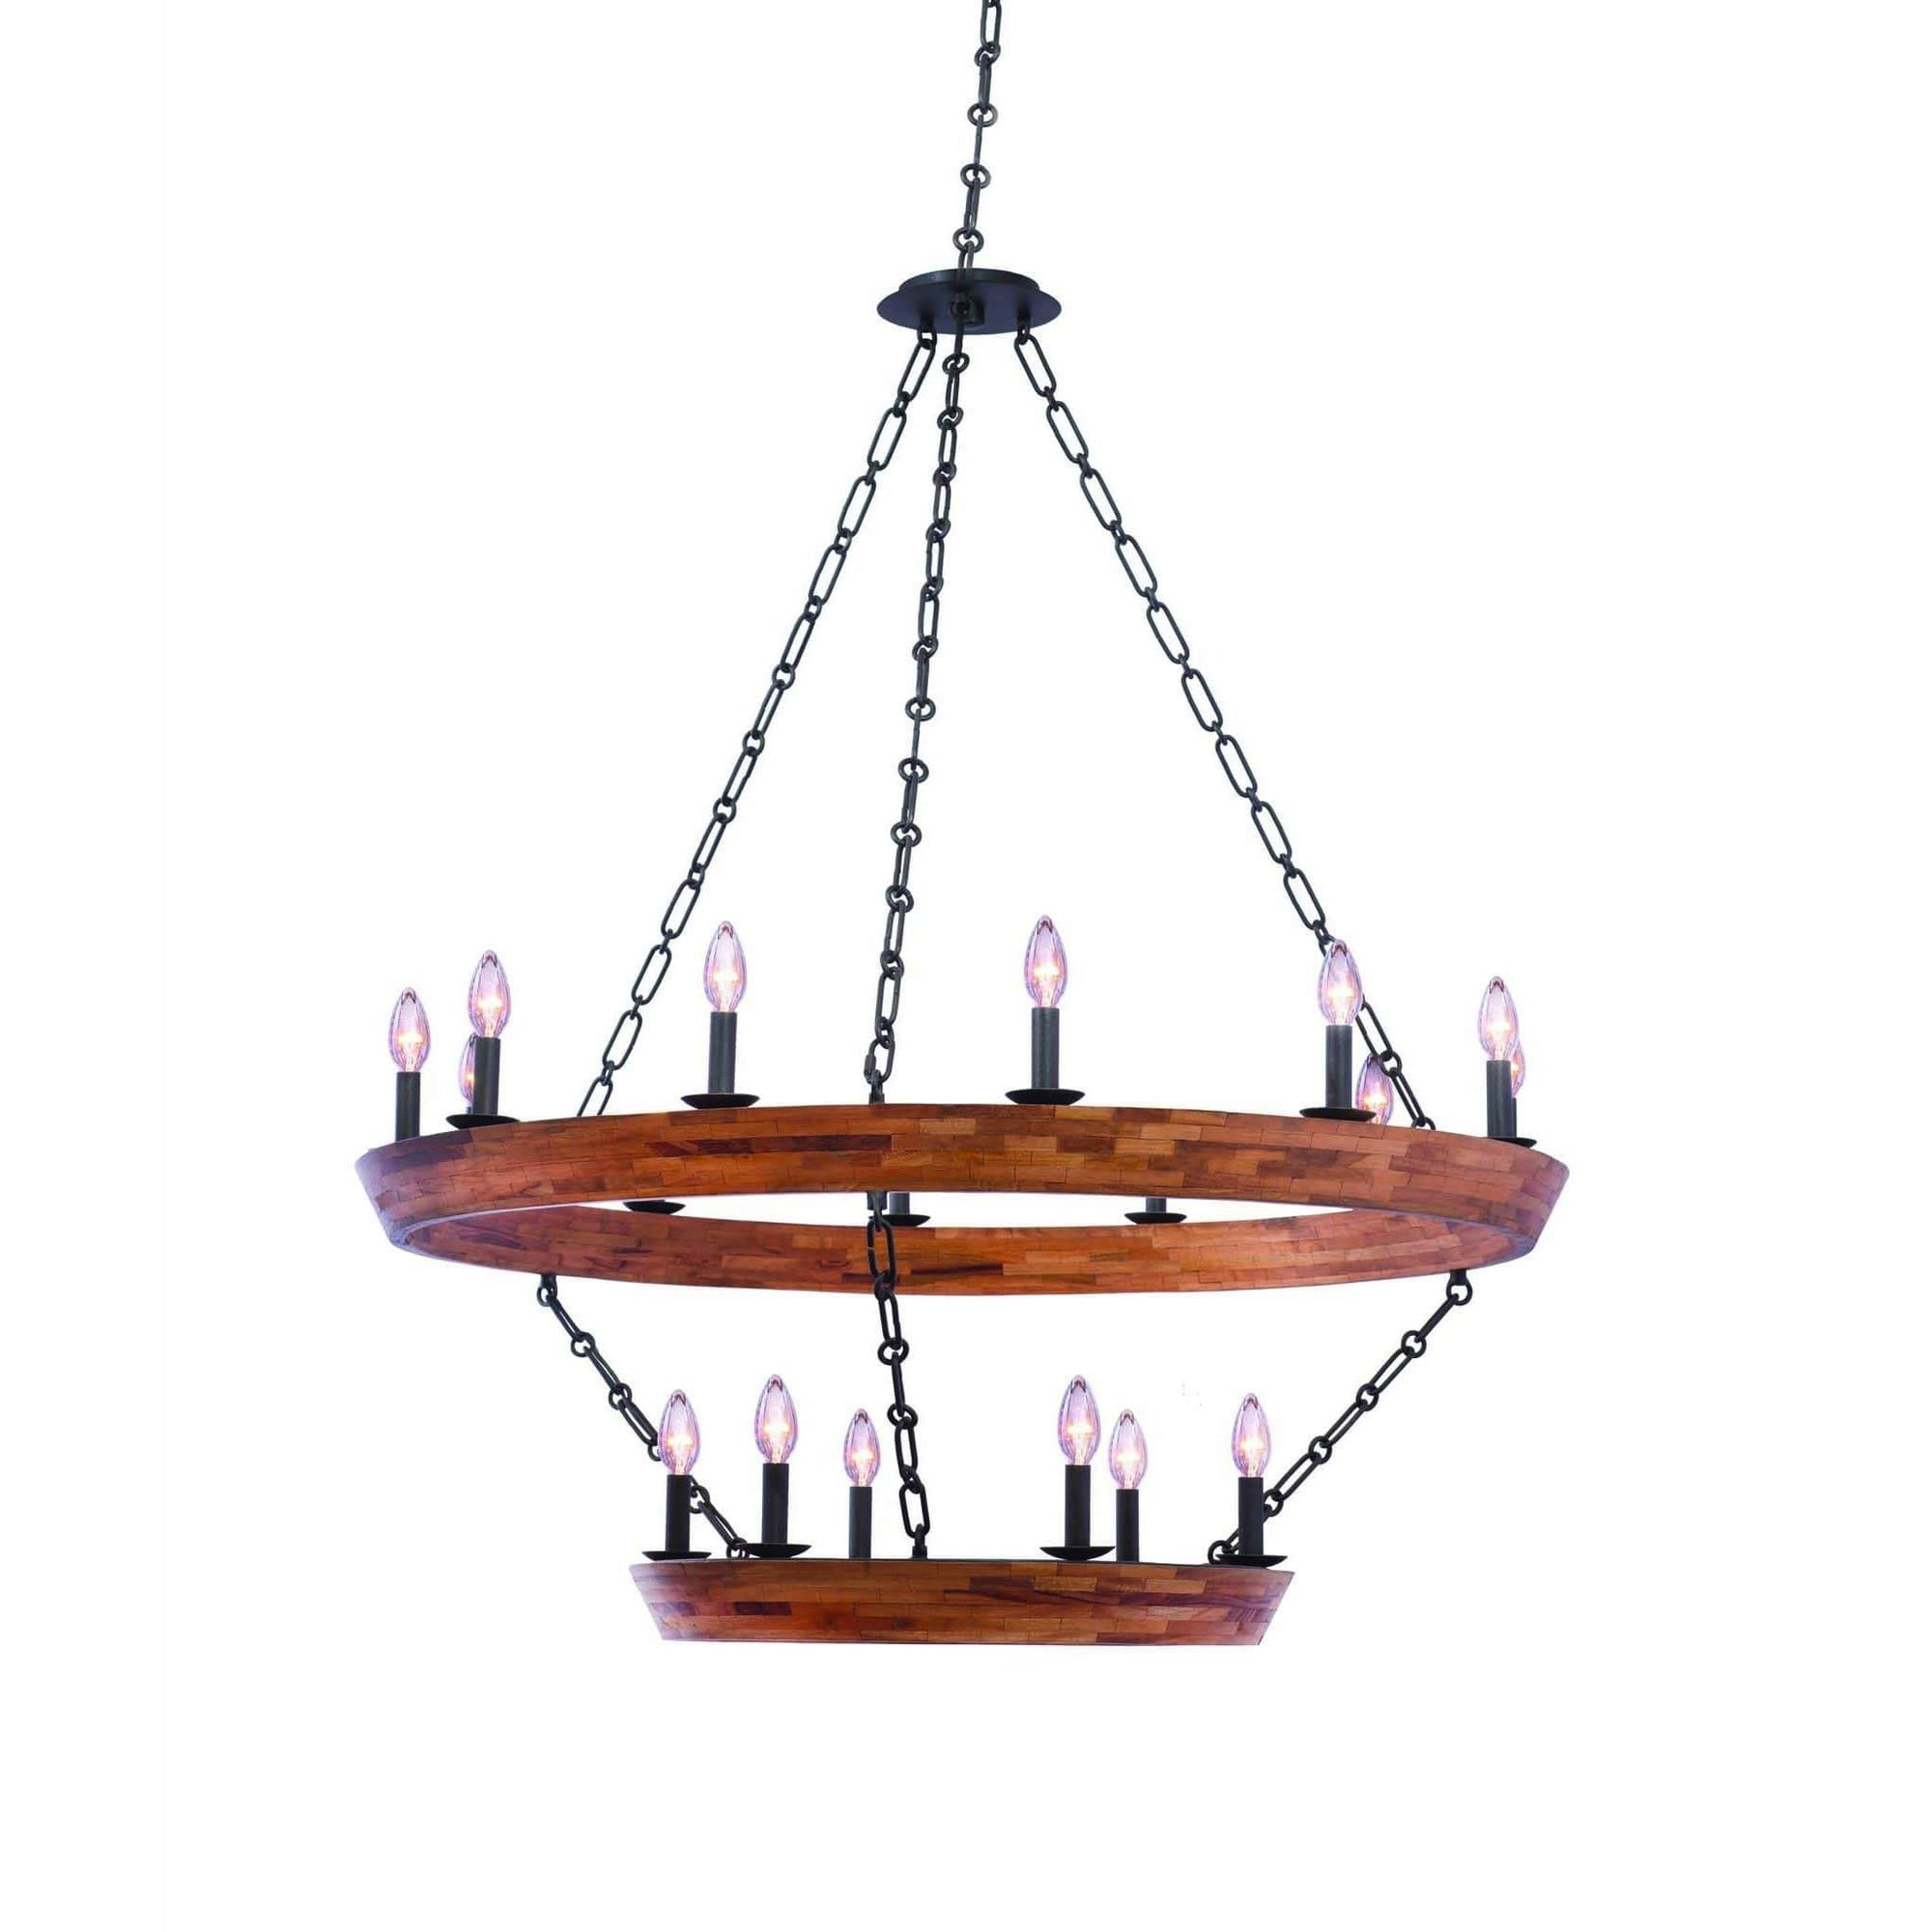 Kalco Lighting Chandeliers Black Iron Lansdale (12+6) Light 2 Tier Chandeleir By Kalco Lighting 505553